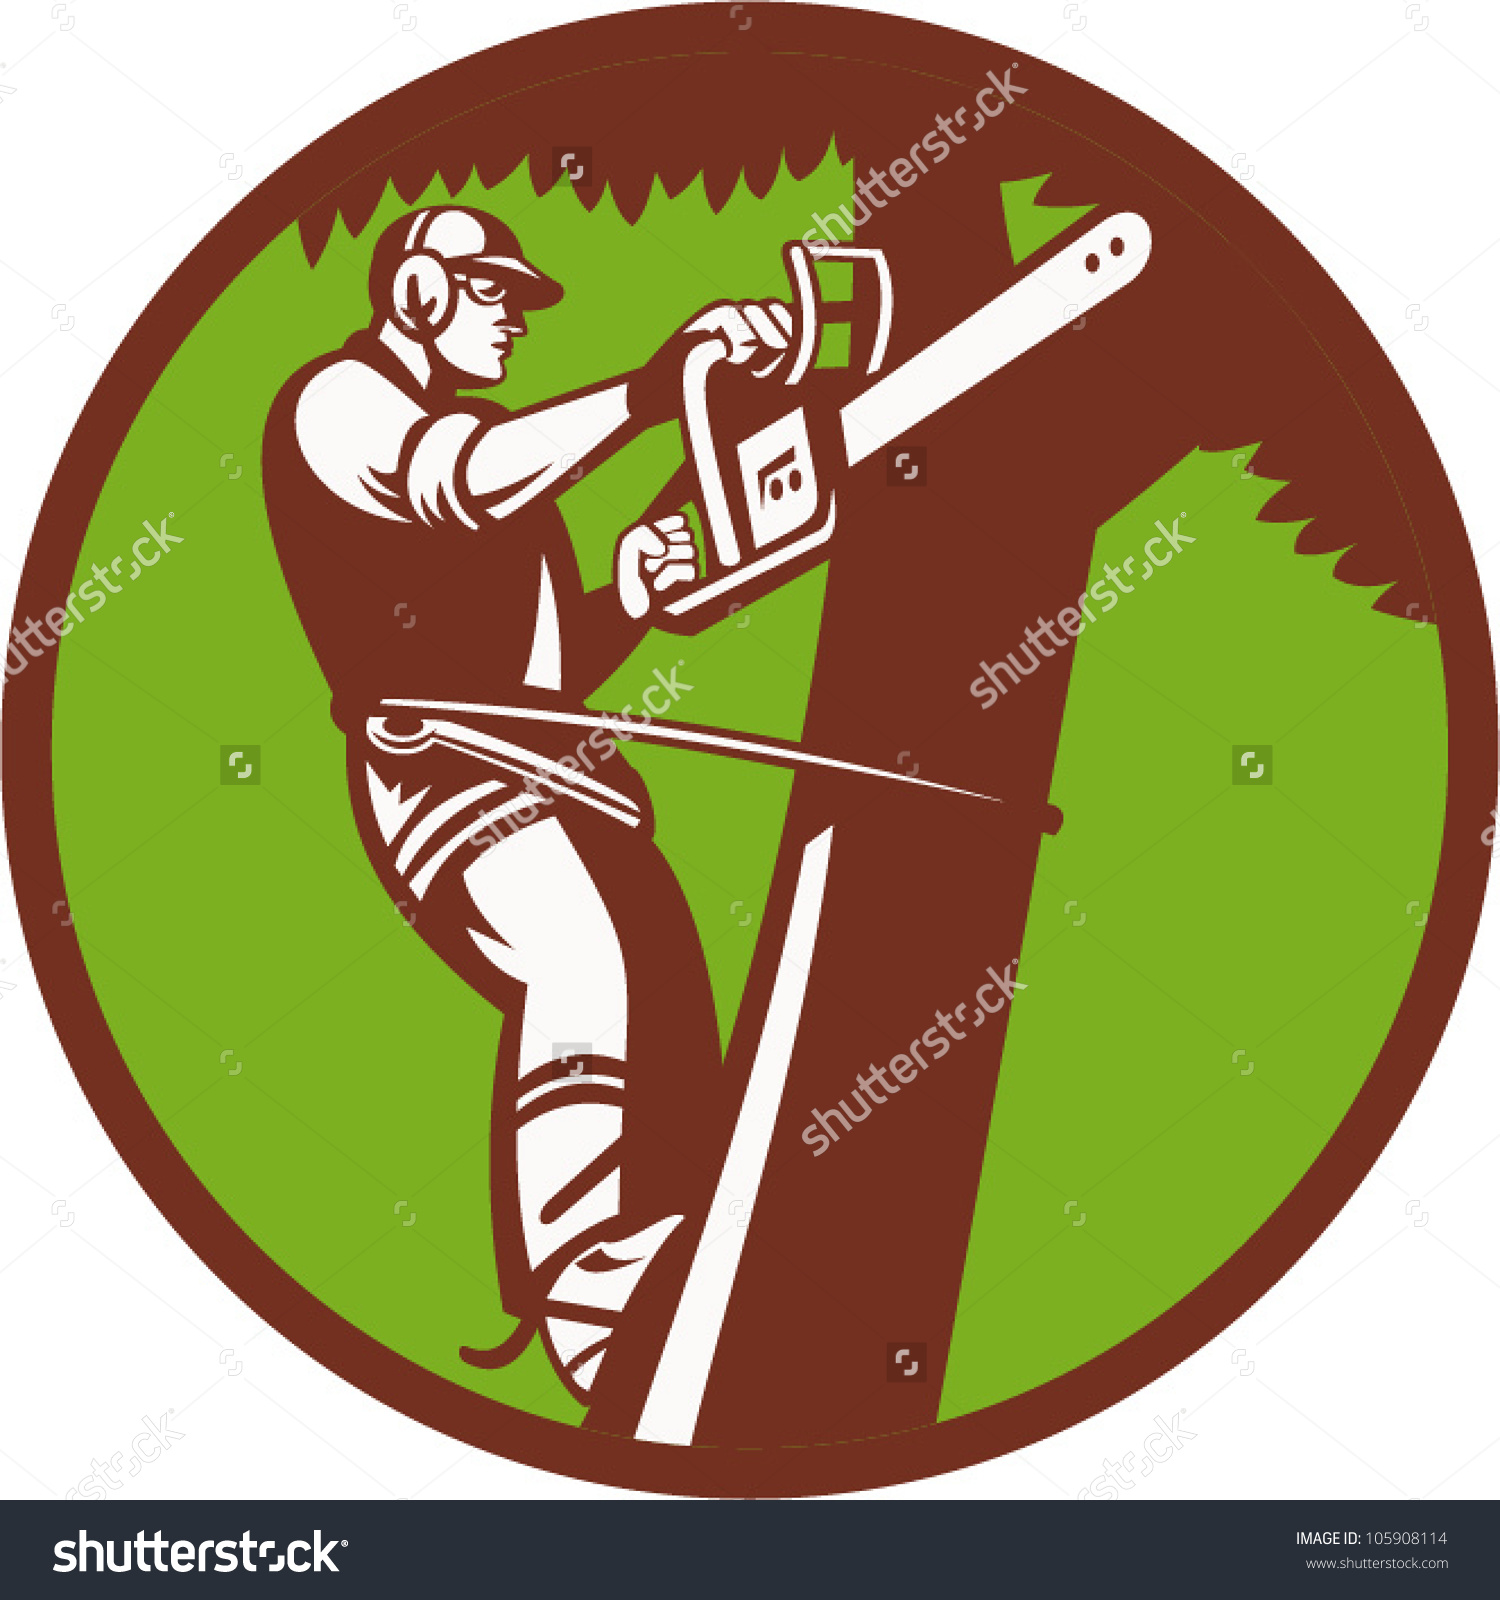 Illustration Tree Surgeon Arborist Trimmer Pruner Stock Vector.